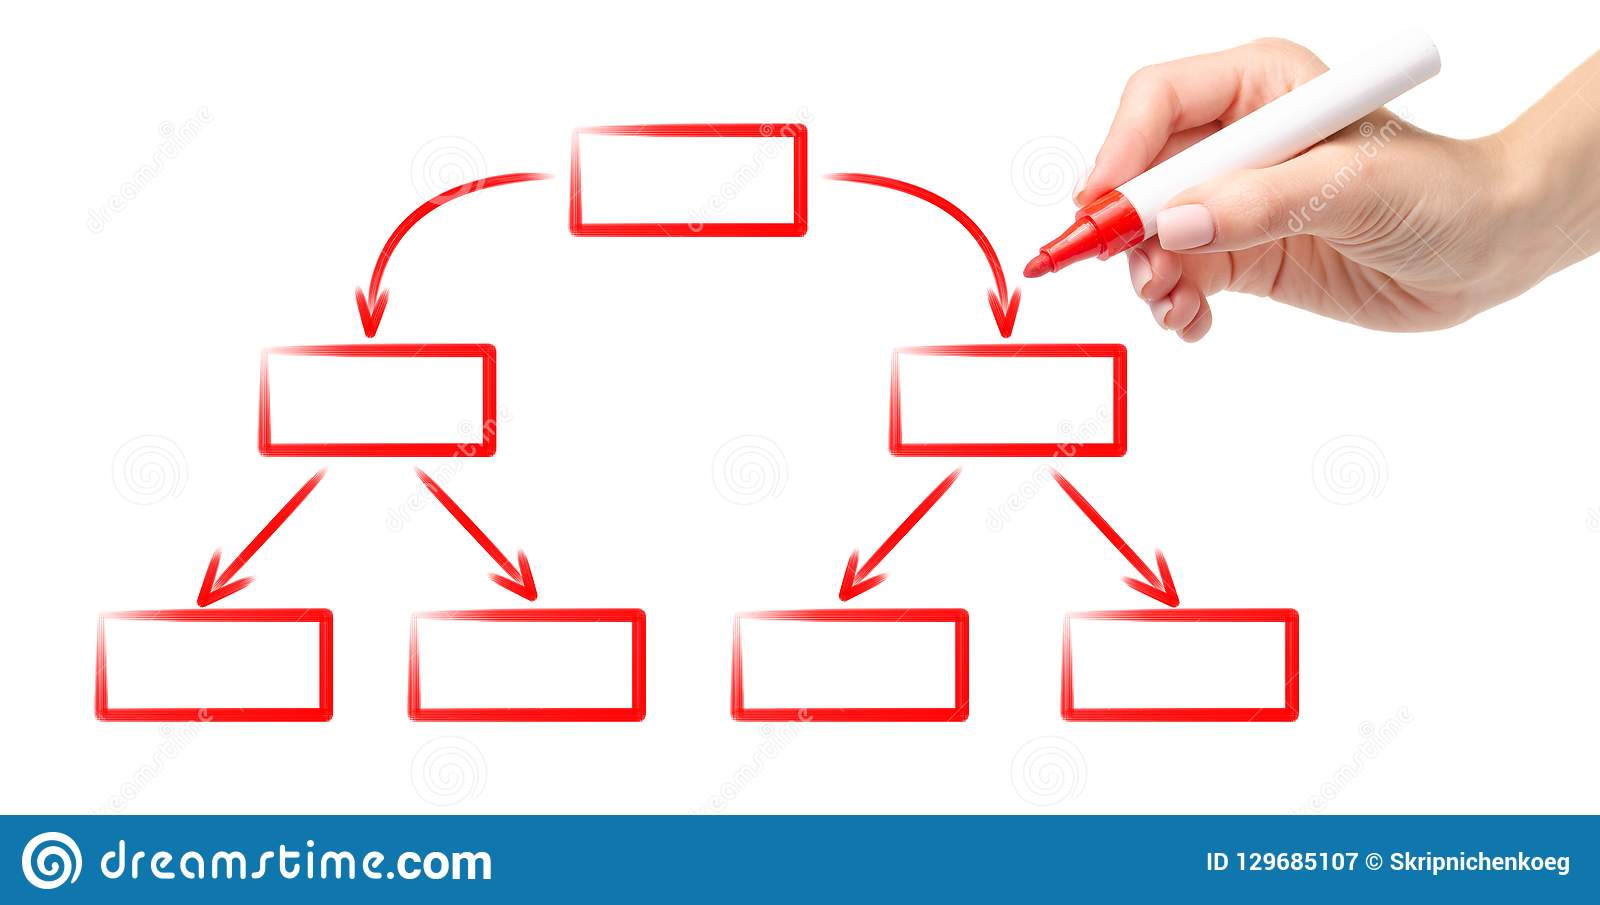 hight resolution of hand red marker drawing diagram scheme empty flow chart